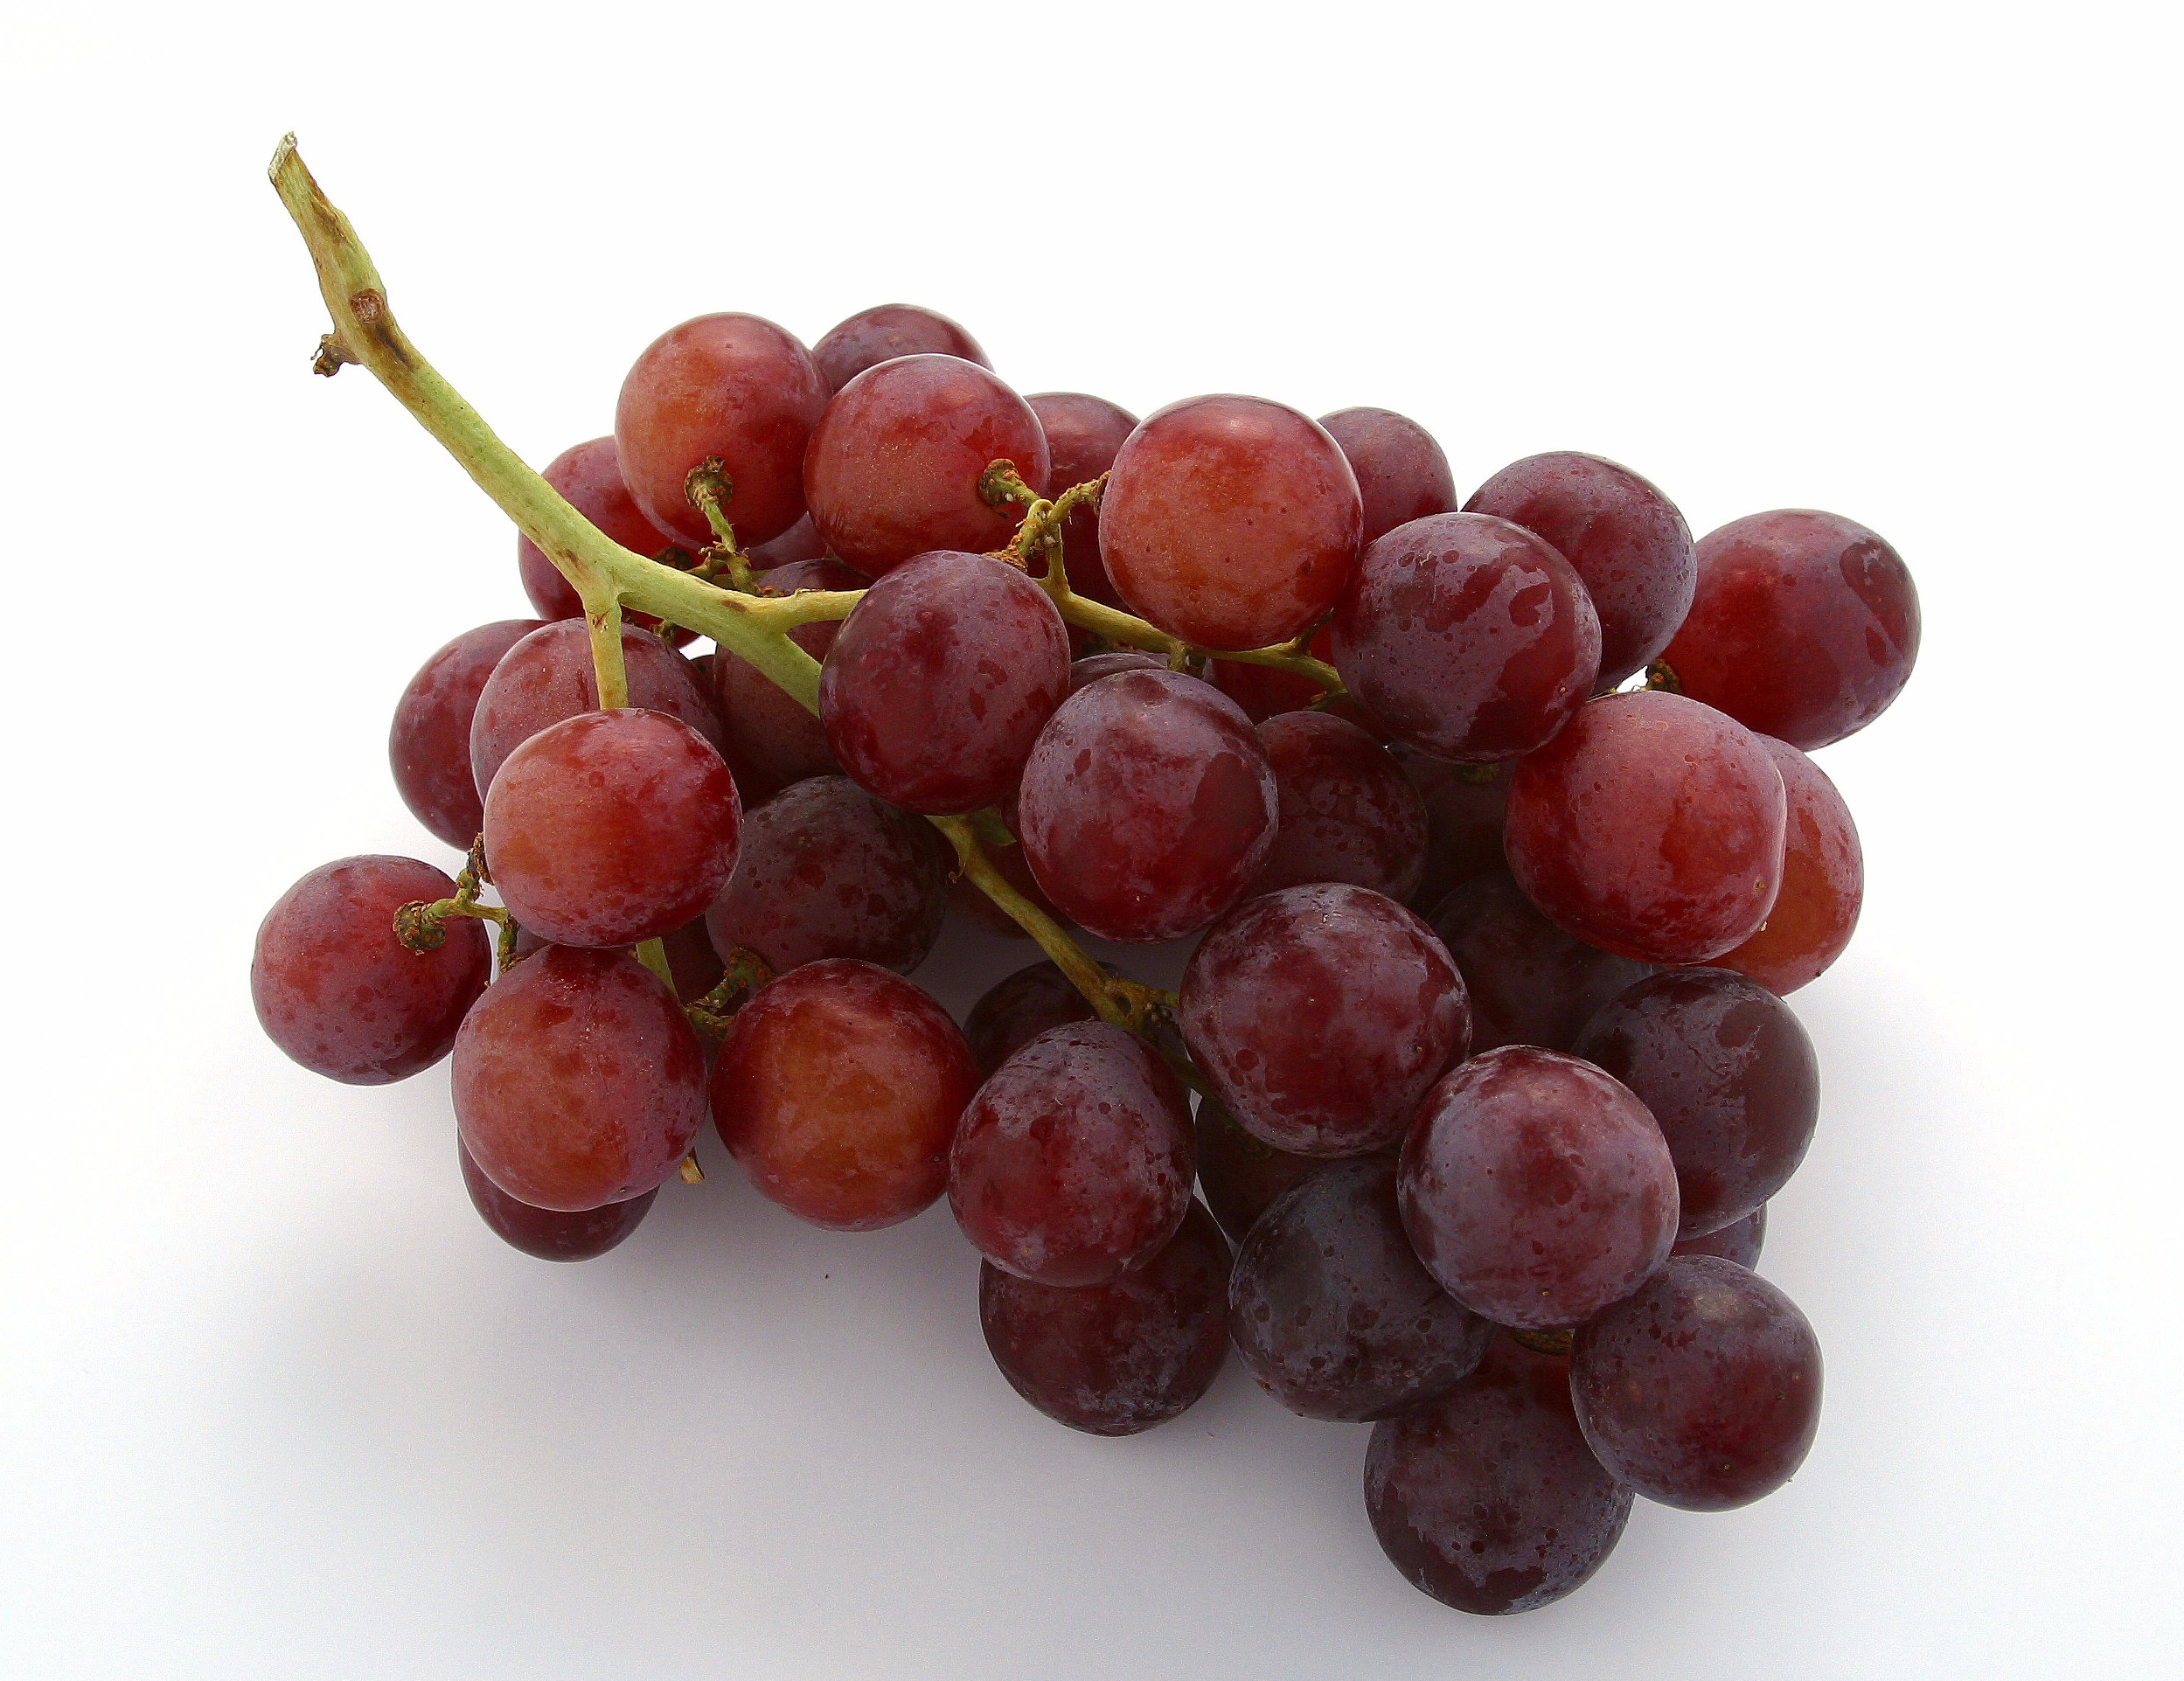 Thanks largely to shoppers buying them more often, retail sales of fresh table grapes in the UK are up 2.2% on last year to 227.9 million kg.